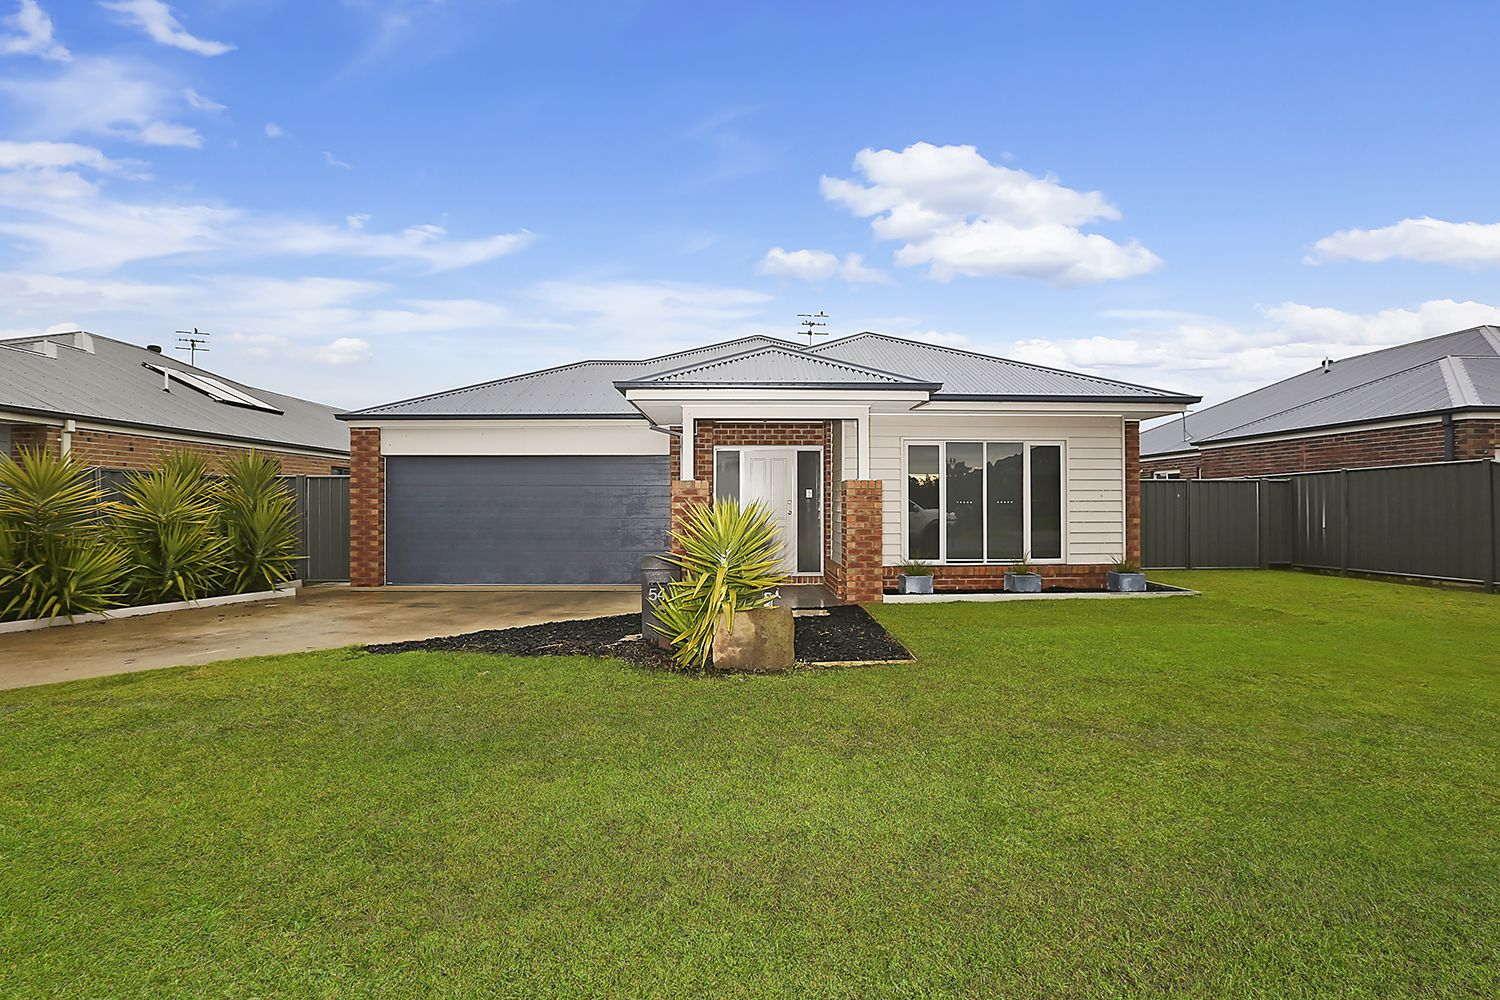 54 Imperial Drive, Colac VIC 3250, Image 0